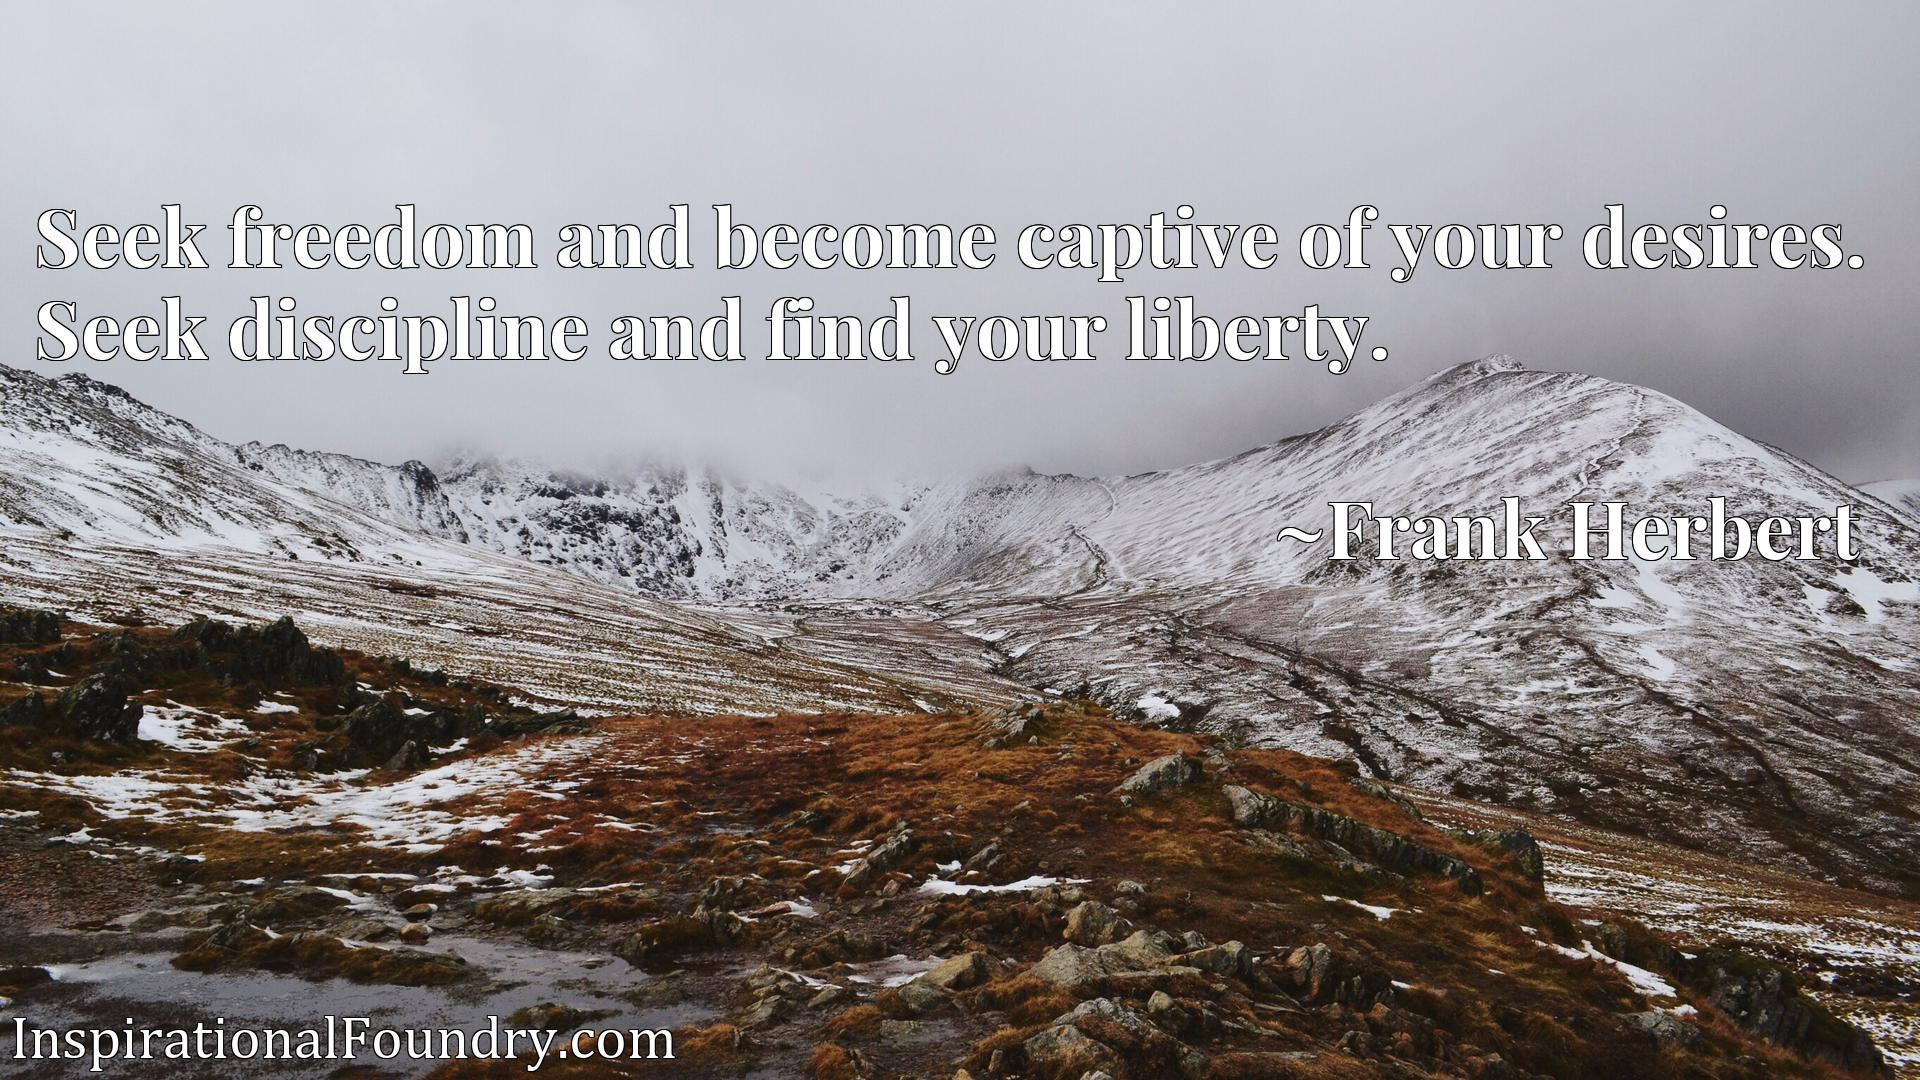 Seek freedom and become captive of your desires. Seek discipline and find your liberty.